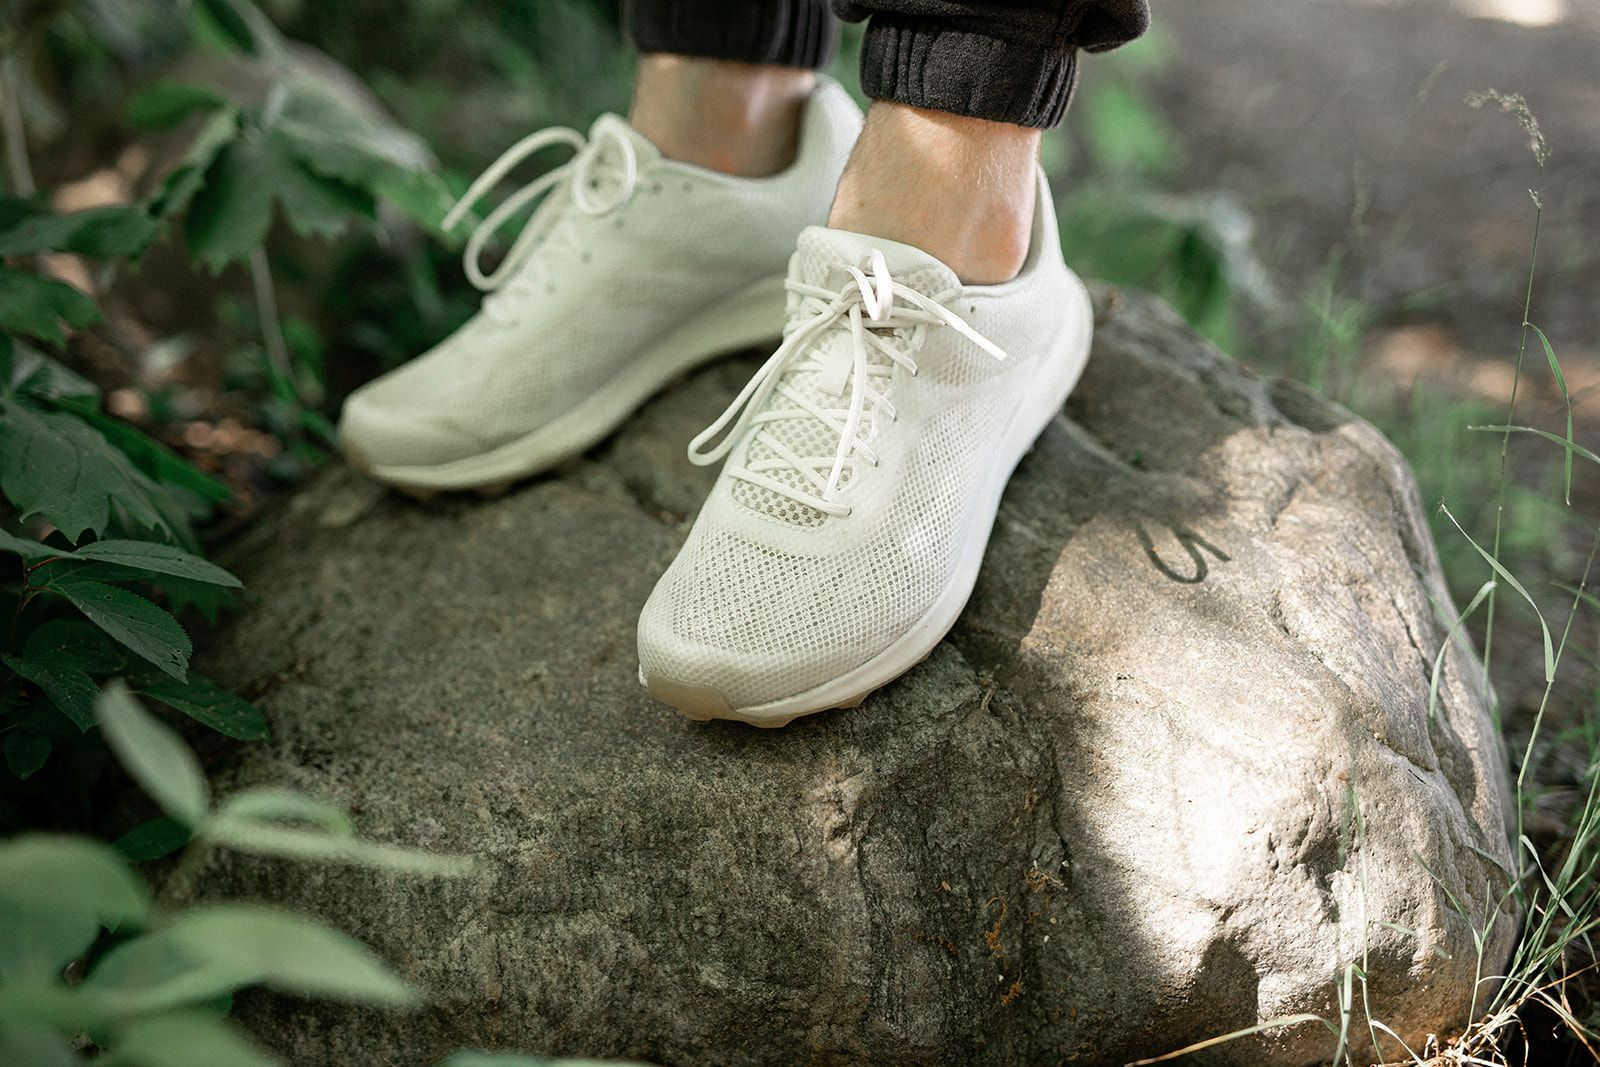 merrell, undyed collection, sneakers